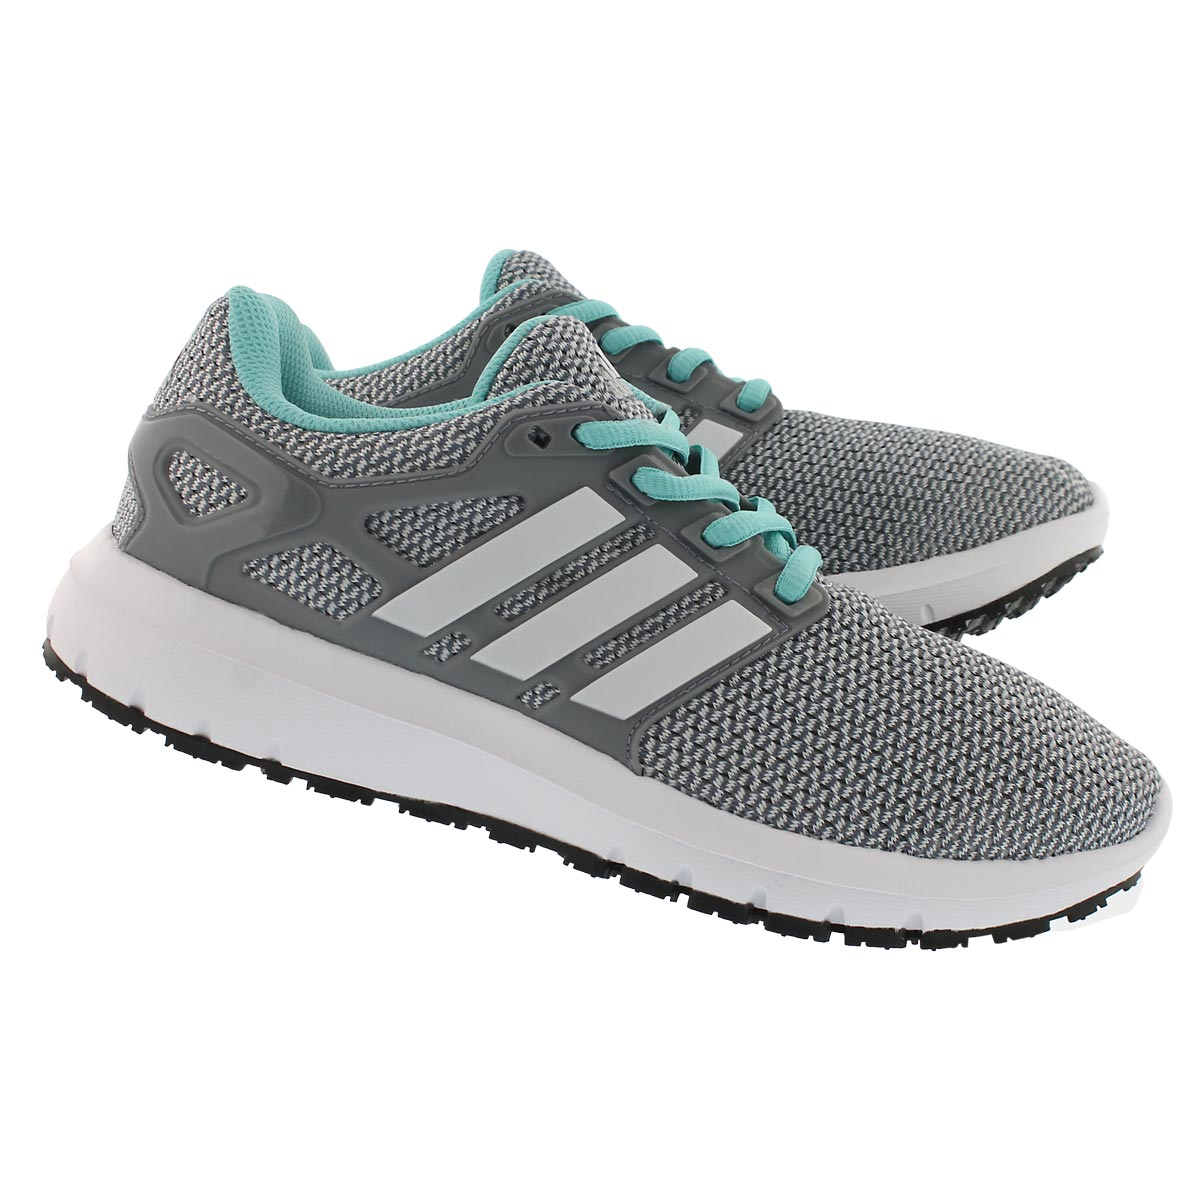 Lds Energy Cloud WTC gy/wt running shoe